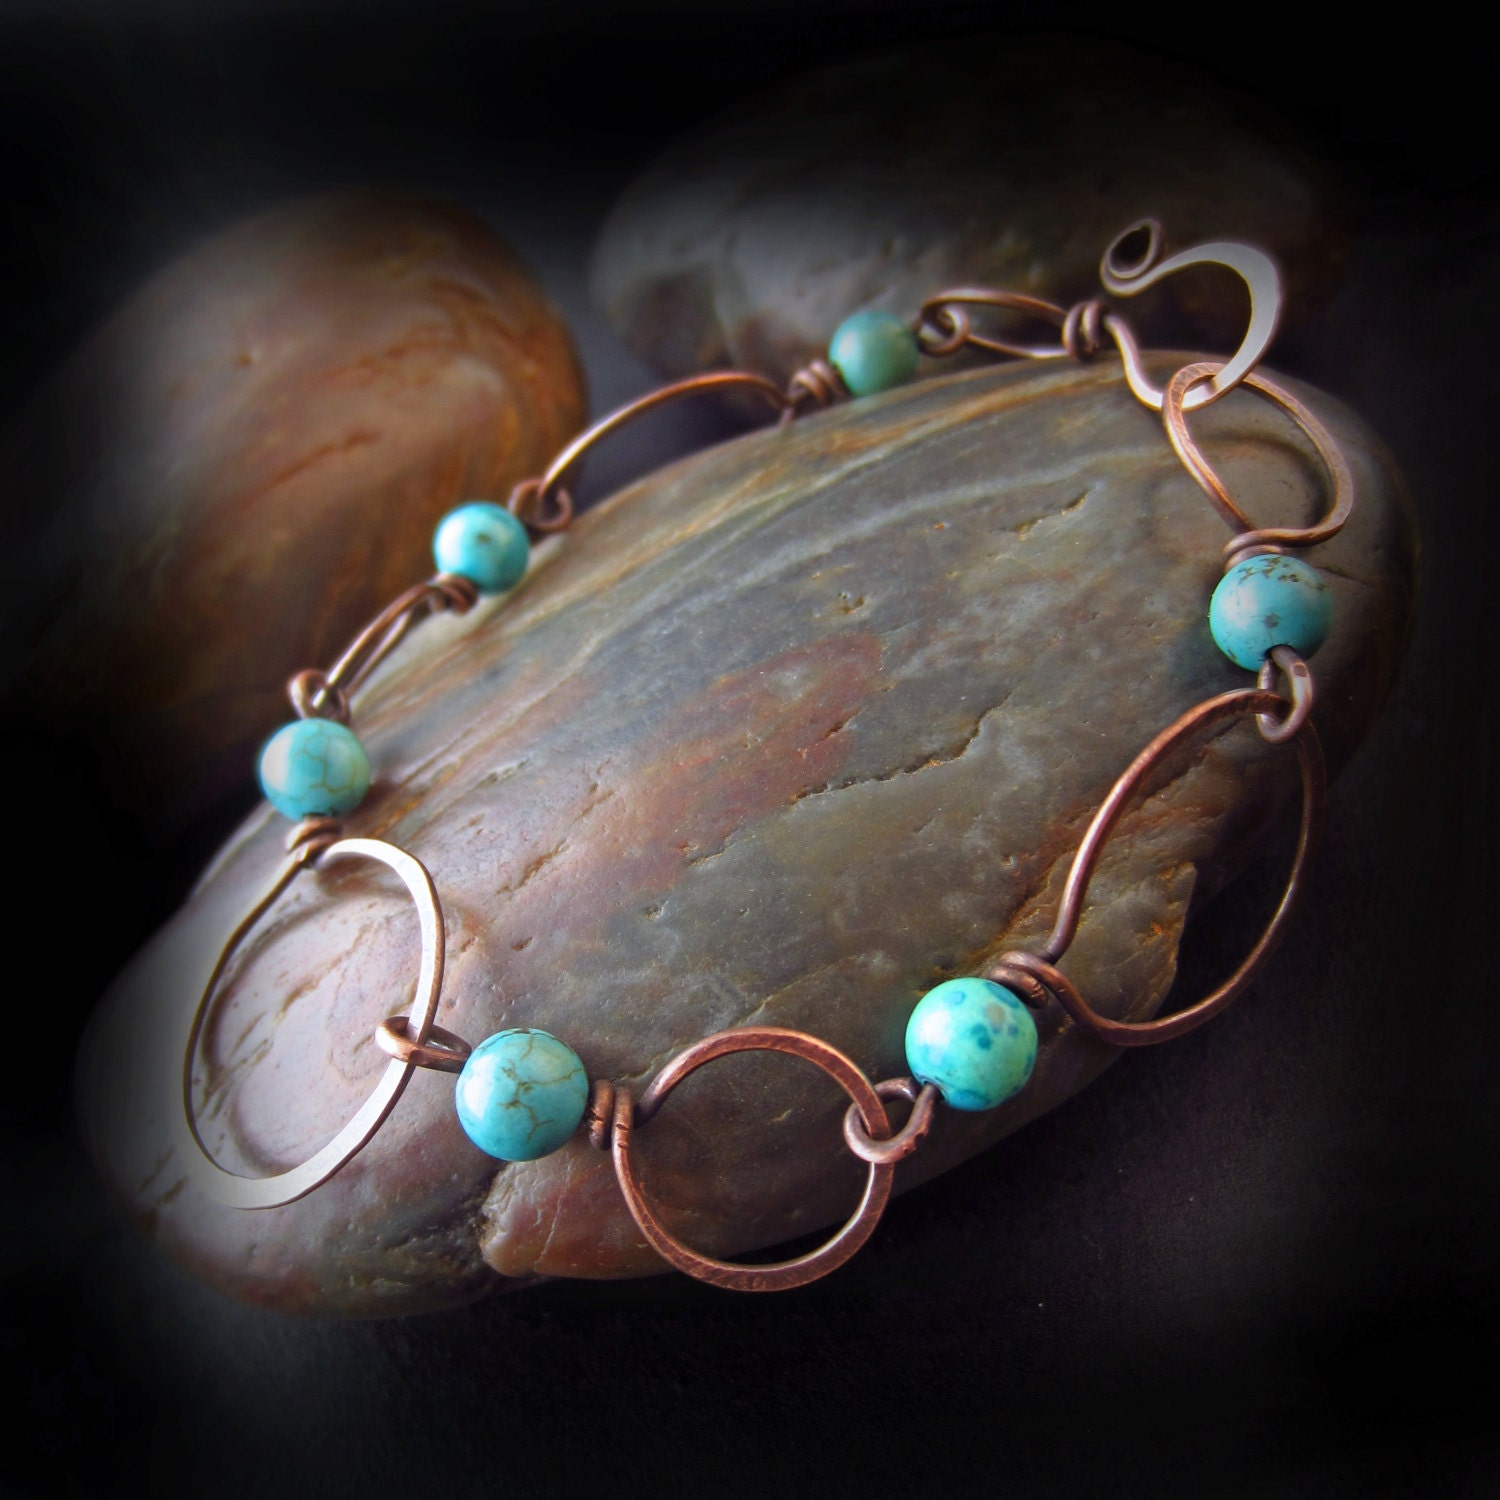 Wire Bracelets With Charms: Rustic Turquoise And Copper Bracelet Wire Wrapped Jewelry